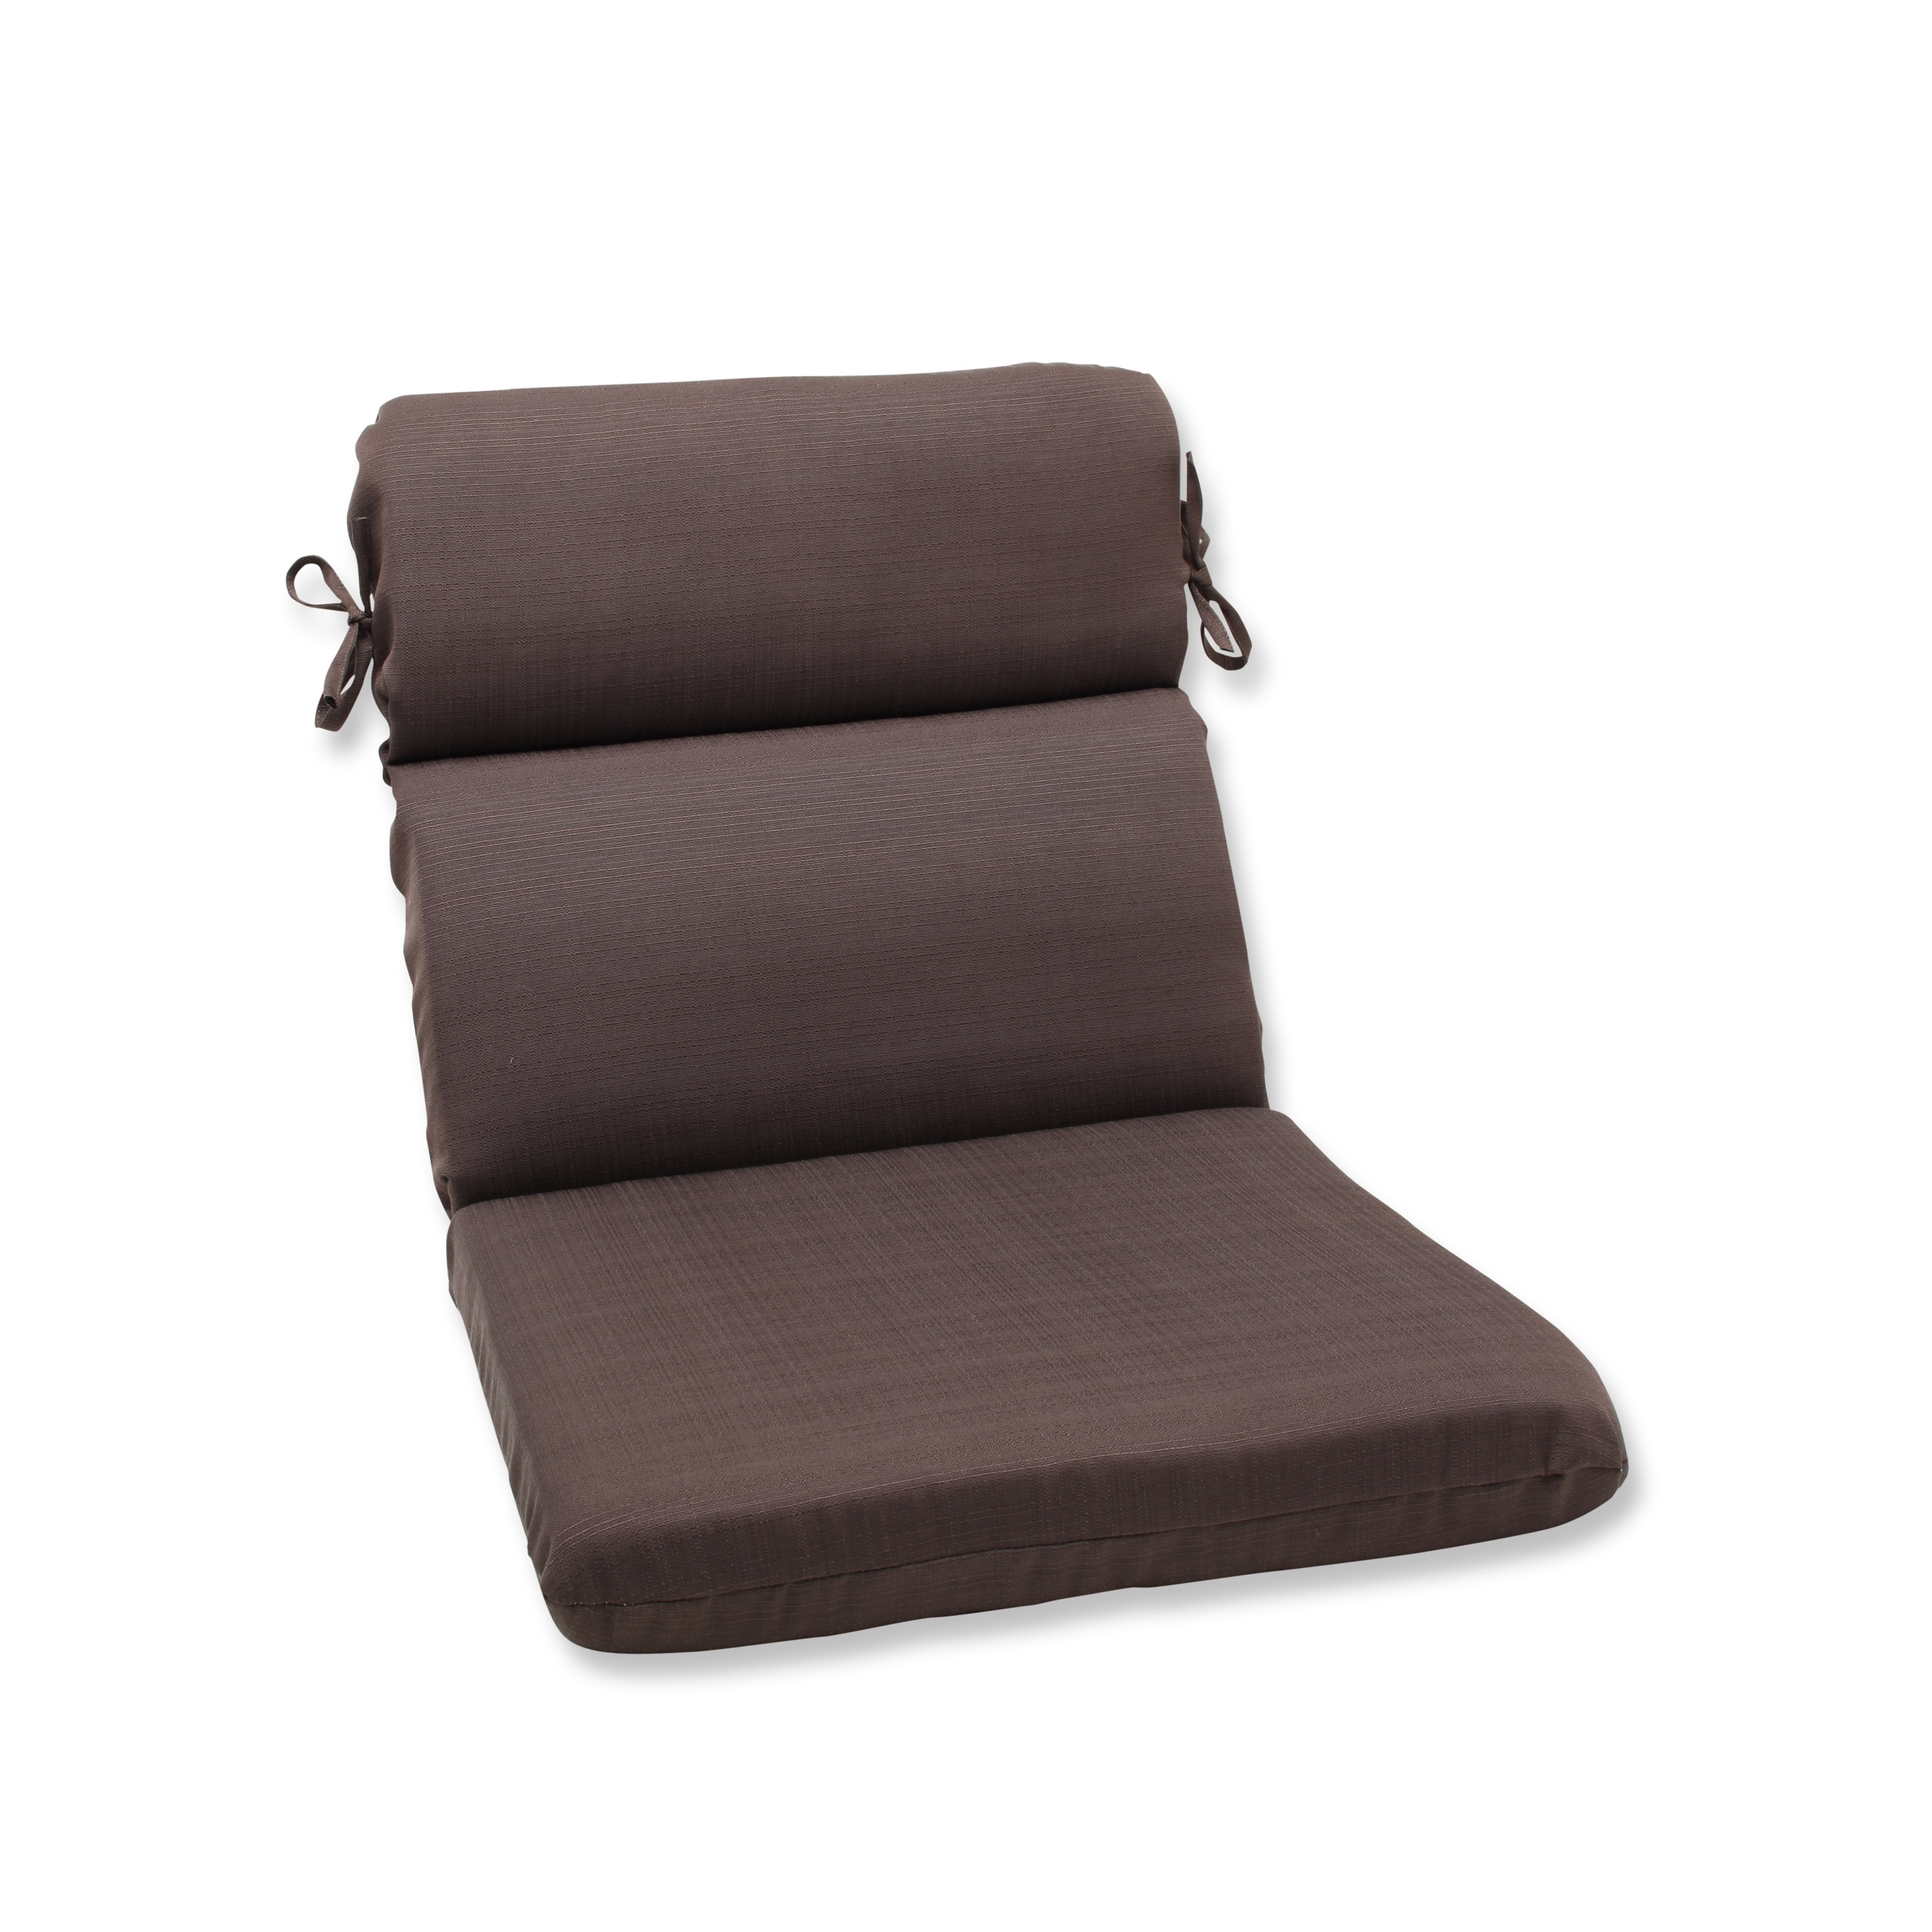 Pillow Perfect Outdoor Forsyth Chocolate Rounded Corners Chair Cushion